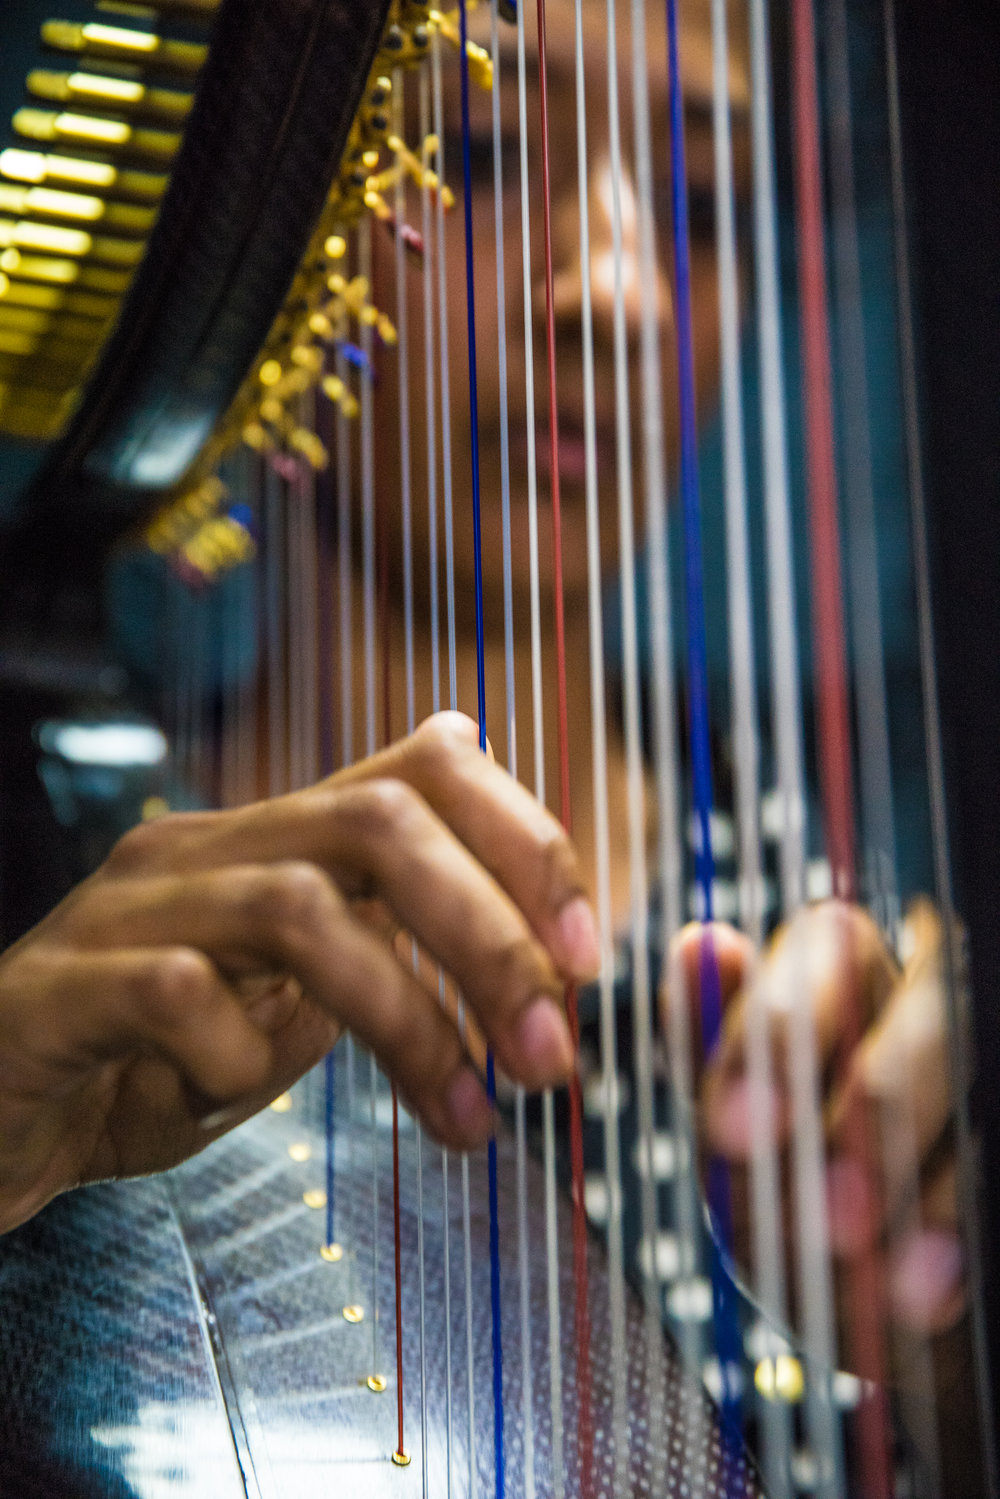 Sheela Bringi on Celtic Harp during the BH session at Bucket's Moving Company. Credit Eron Rauch.